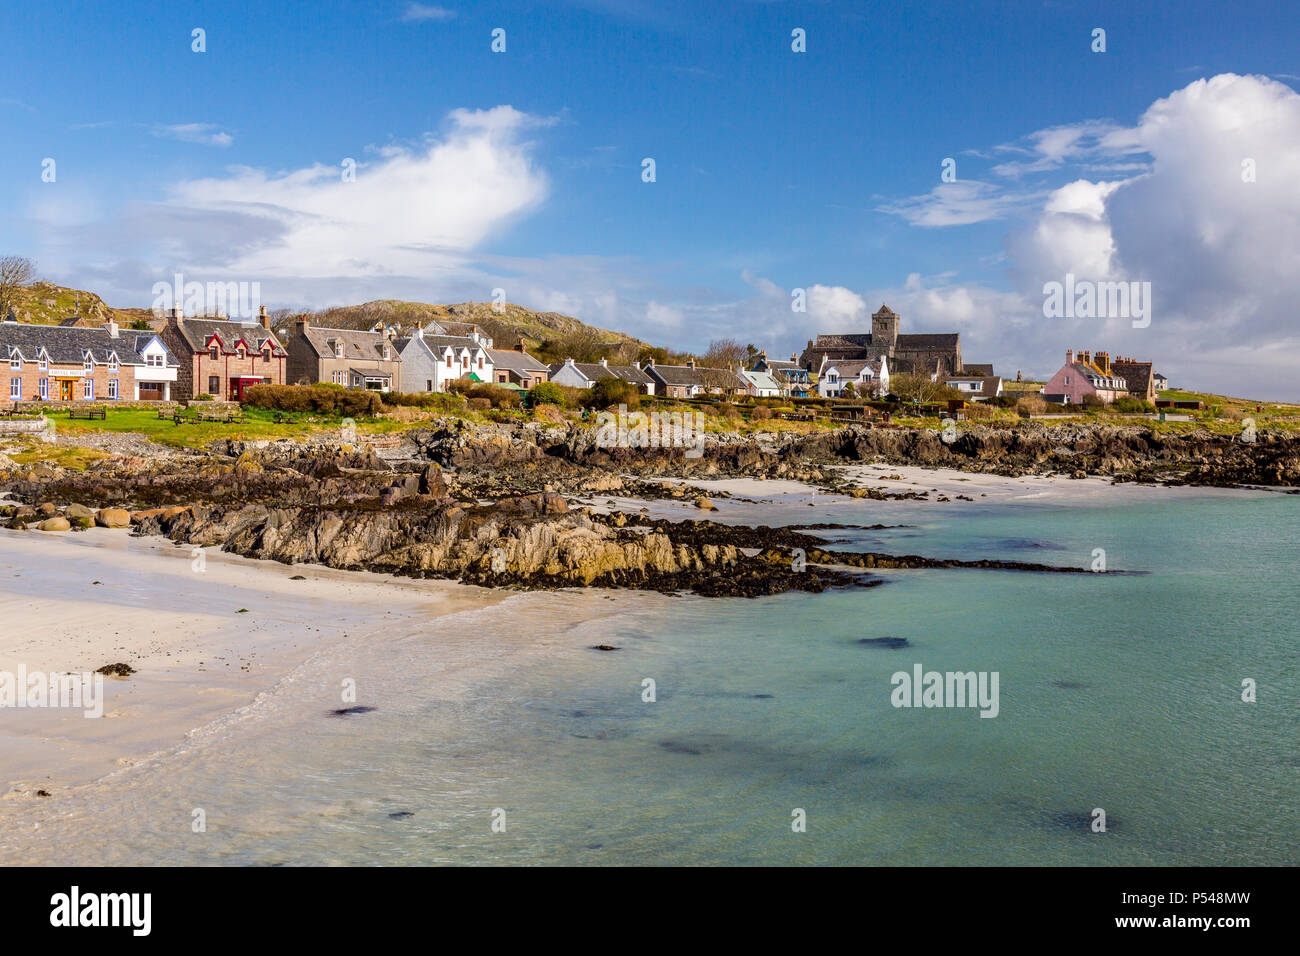 The village of Baile Mor and the historic Abbey on the Hebridean island of Iona both overlook the Sound of Iona, Argyll and Bute, Scotland, UK - Stock Image